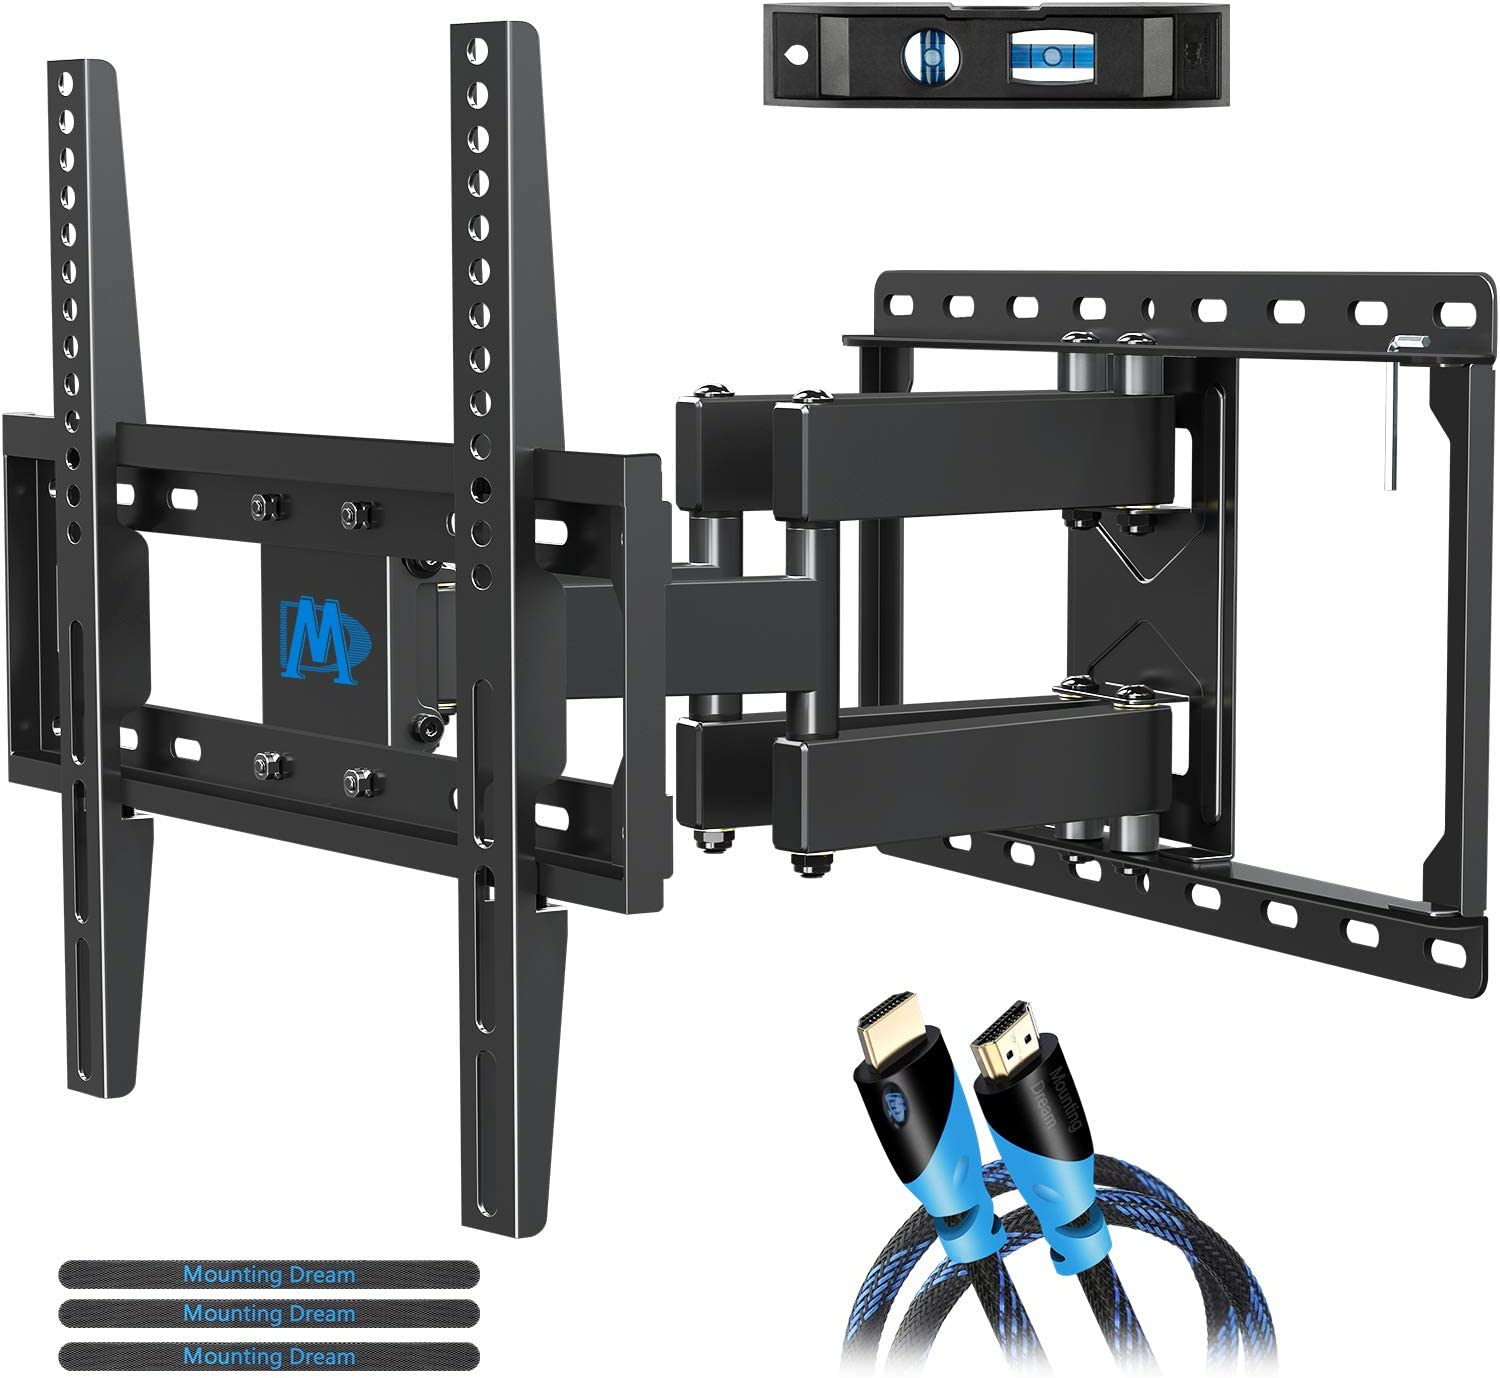 Mounting Dream UL Listed TV Mount TV Wall Mount with Swivel and Tilt for Most 32-55 Inch TV, Full Motion TV Mount with Articulating Dual Arms, Max VESA 400x400mm, 99 lbs. Loading, 16 inch Studs MD2380: Electronics